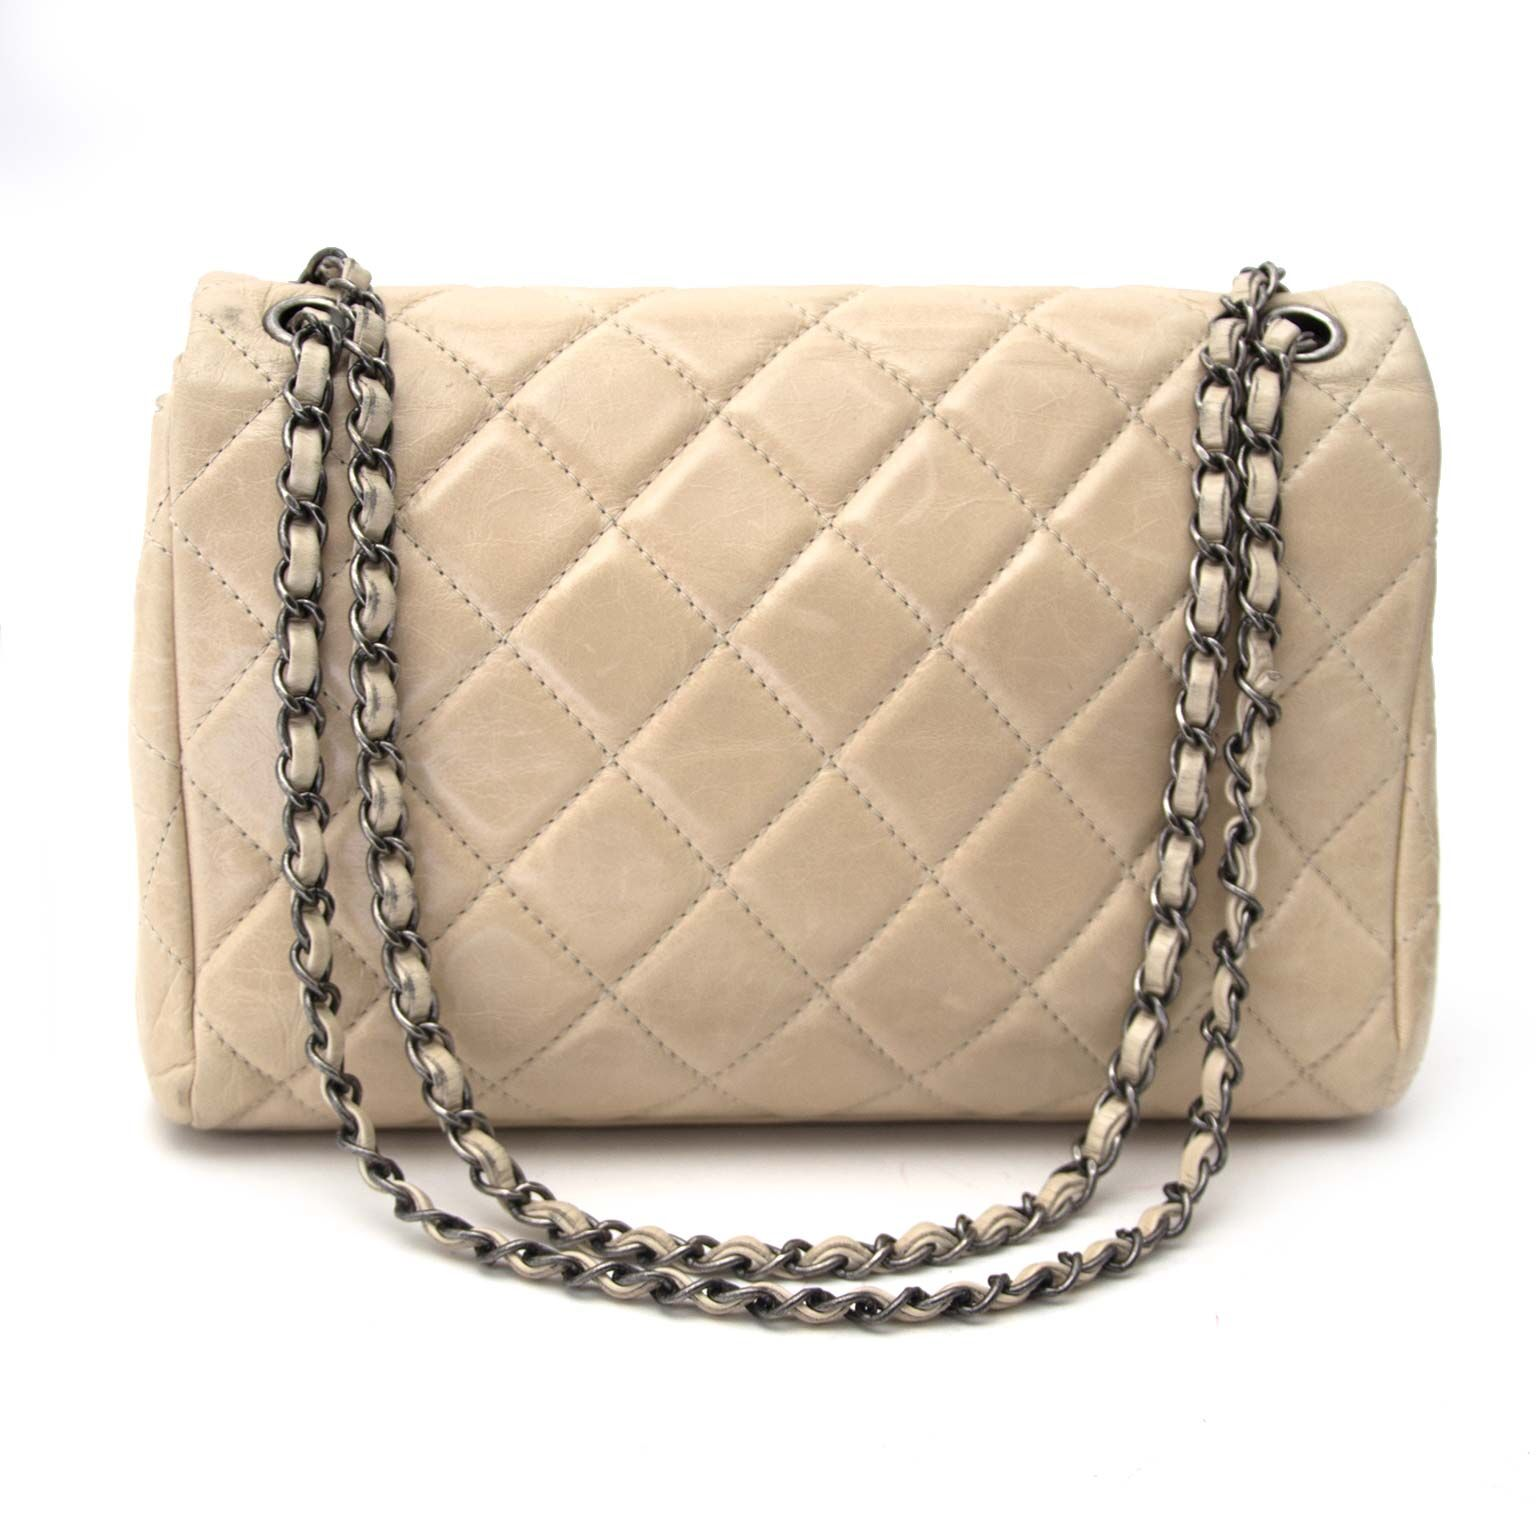 28a4bb3ad37cea Chanel Baby Pink Wallet On A Chain. Sold. Chanel Beige Flabbag secondhand  Tweedehands chanel bij Labellov